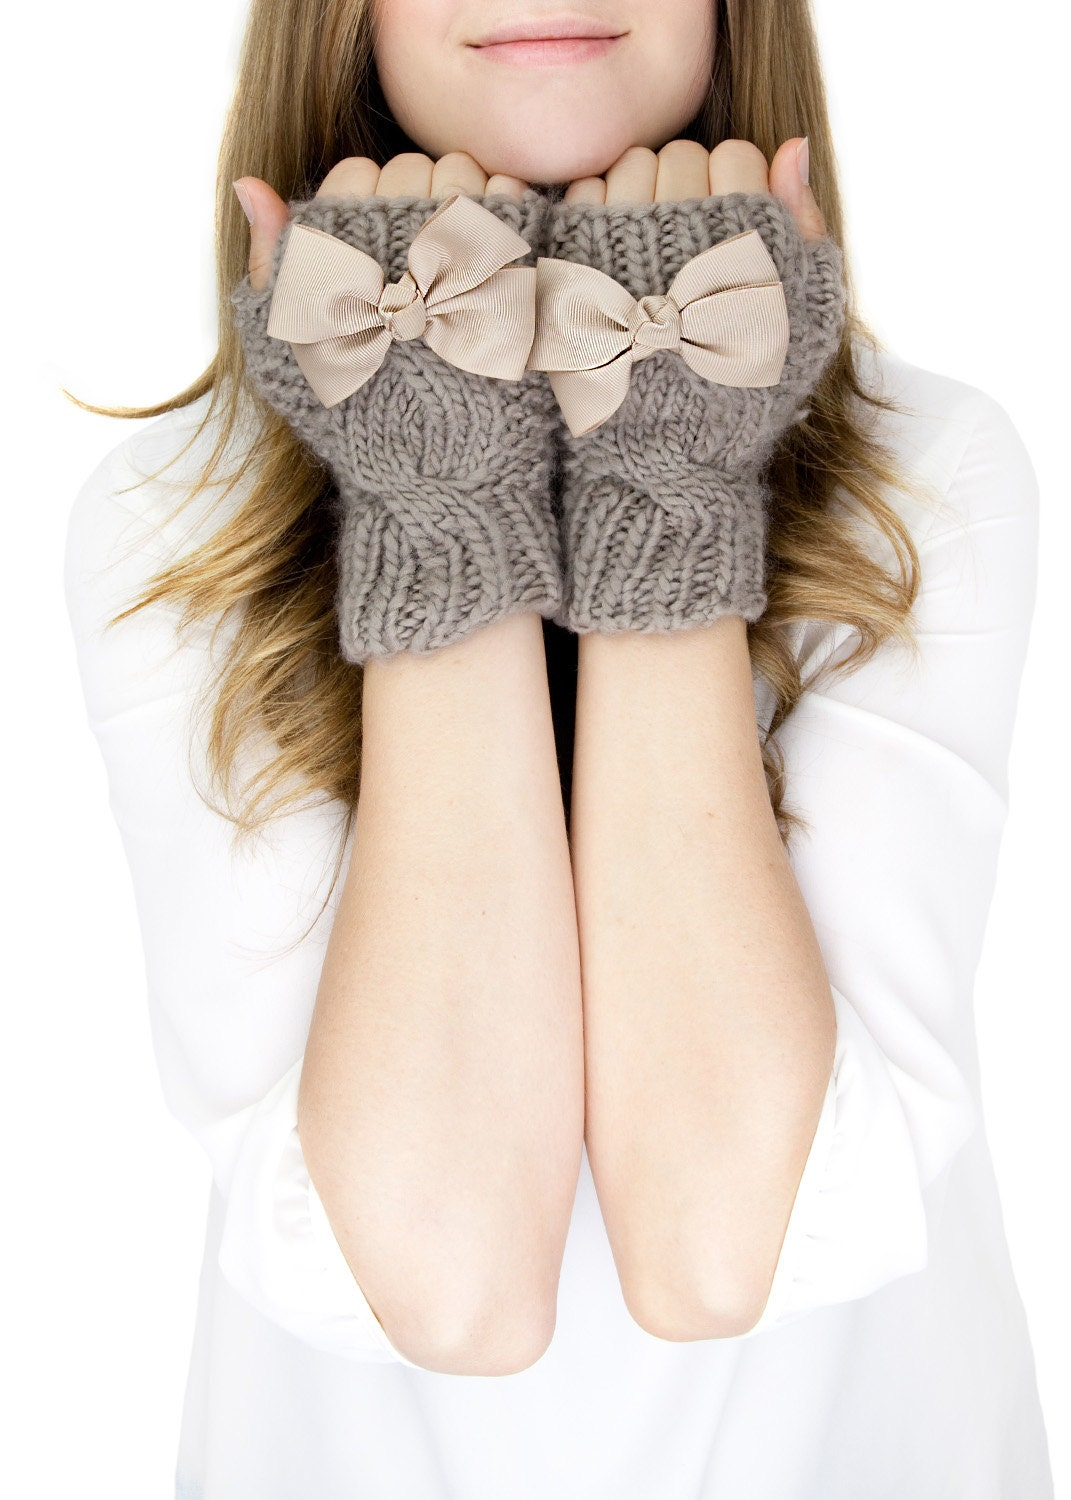 CHUNKY TAN KNIT mittens, fingerless knit gloves with bow, black knit gloves, knit bow gloves, wool - gertiebaxter